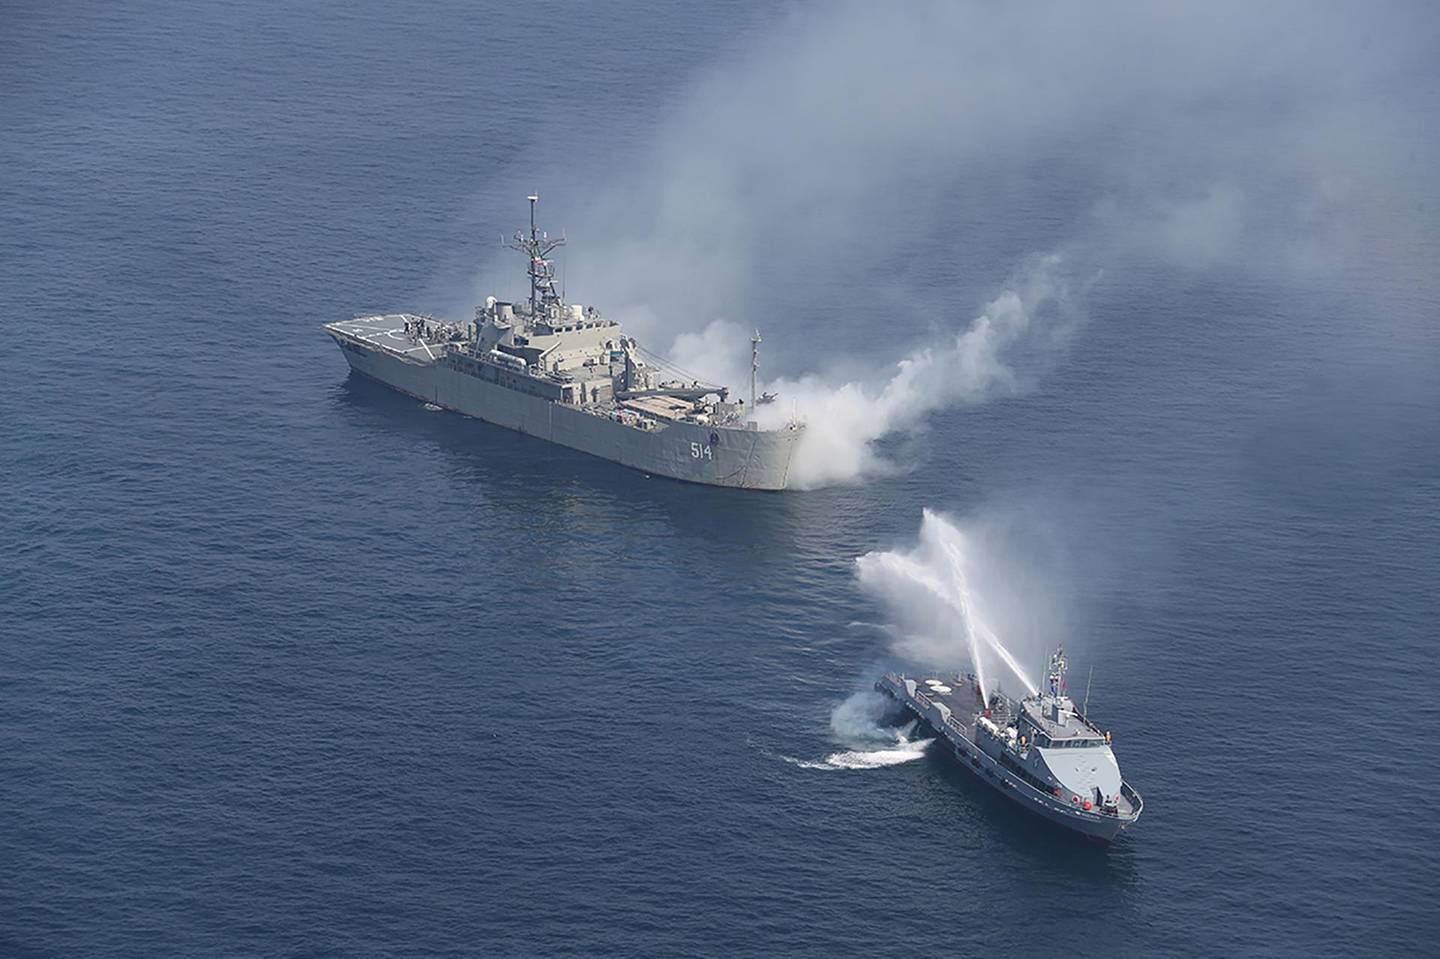 Iranian warships are seen during a joint naval exercise with Russian navy in the Indian Ocean, Iran February 16, 2021. Picture taken February 16, 2021. Iranian Army/WANA (West Asia News Agency) via REUTERS ATTENTION EDITORS - THIS IMAGE HAS BEEN SUPPLIED BY A THIRD PARTY.